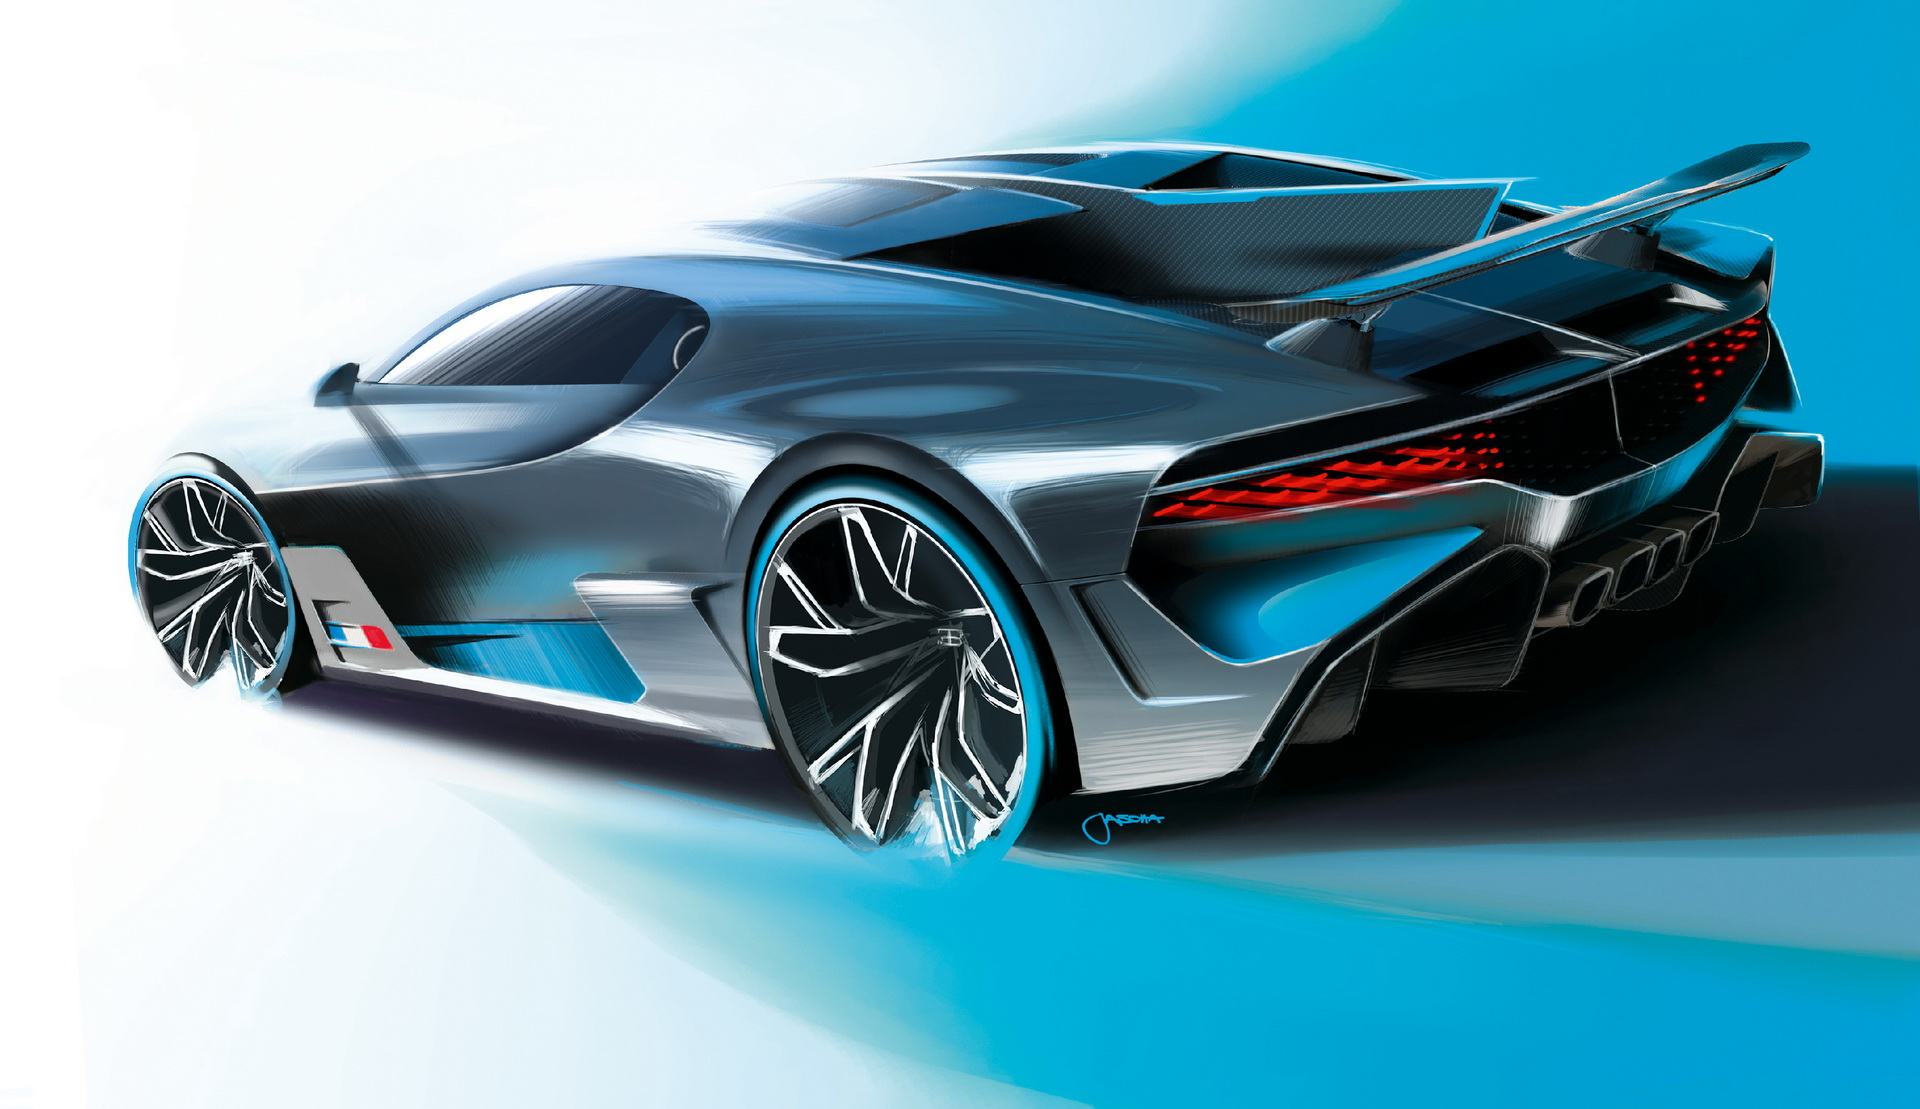 Bugatti Divo Debuts With 1500 HP. Only 40 Units Will Be Made